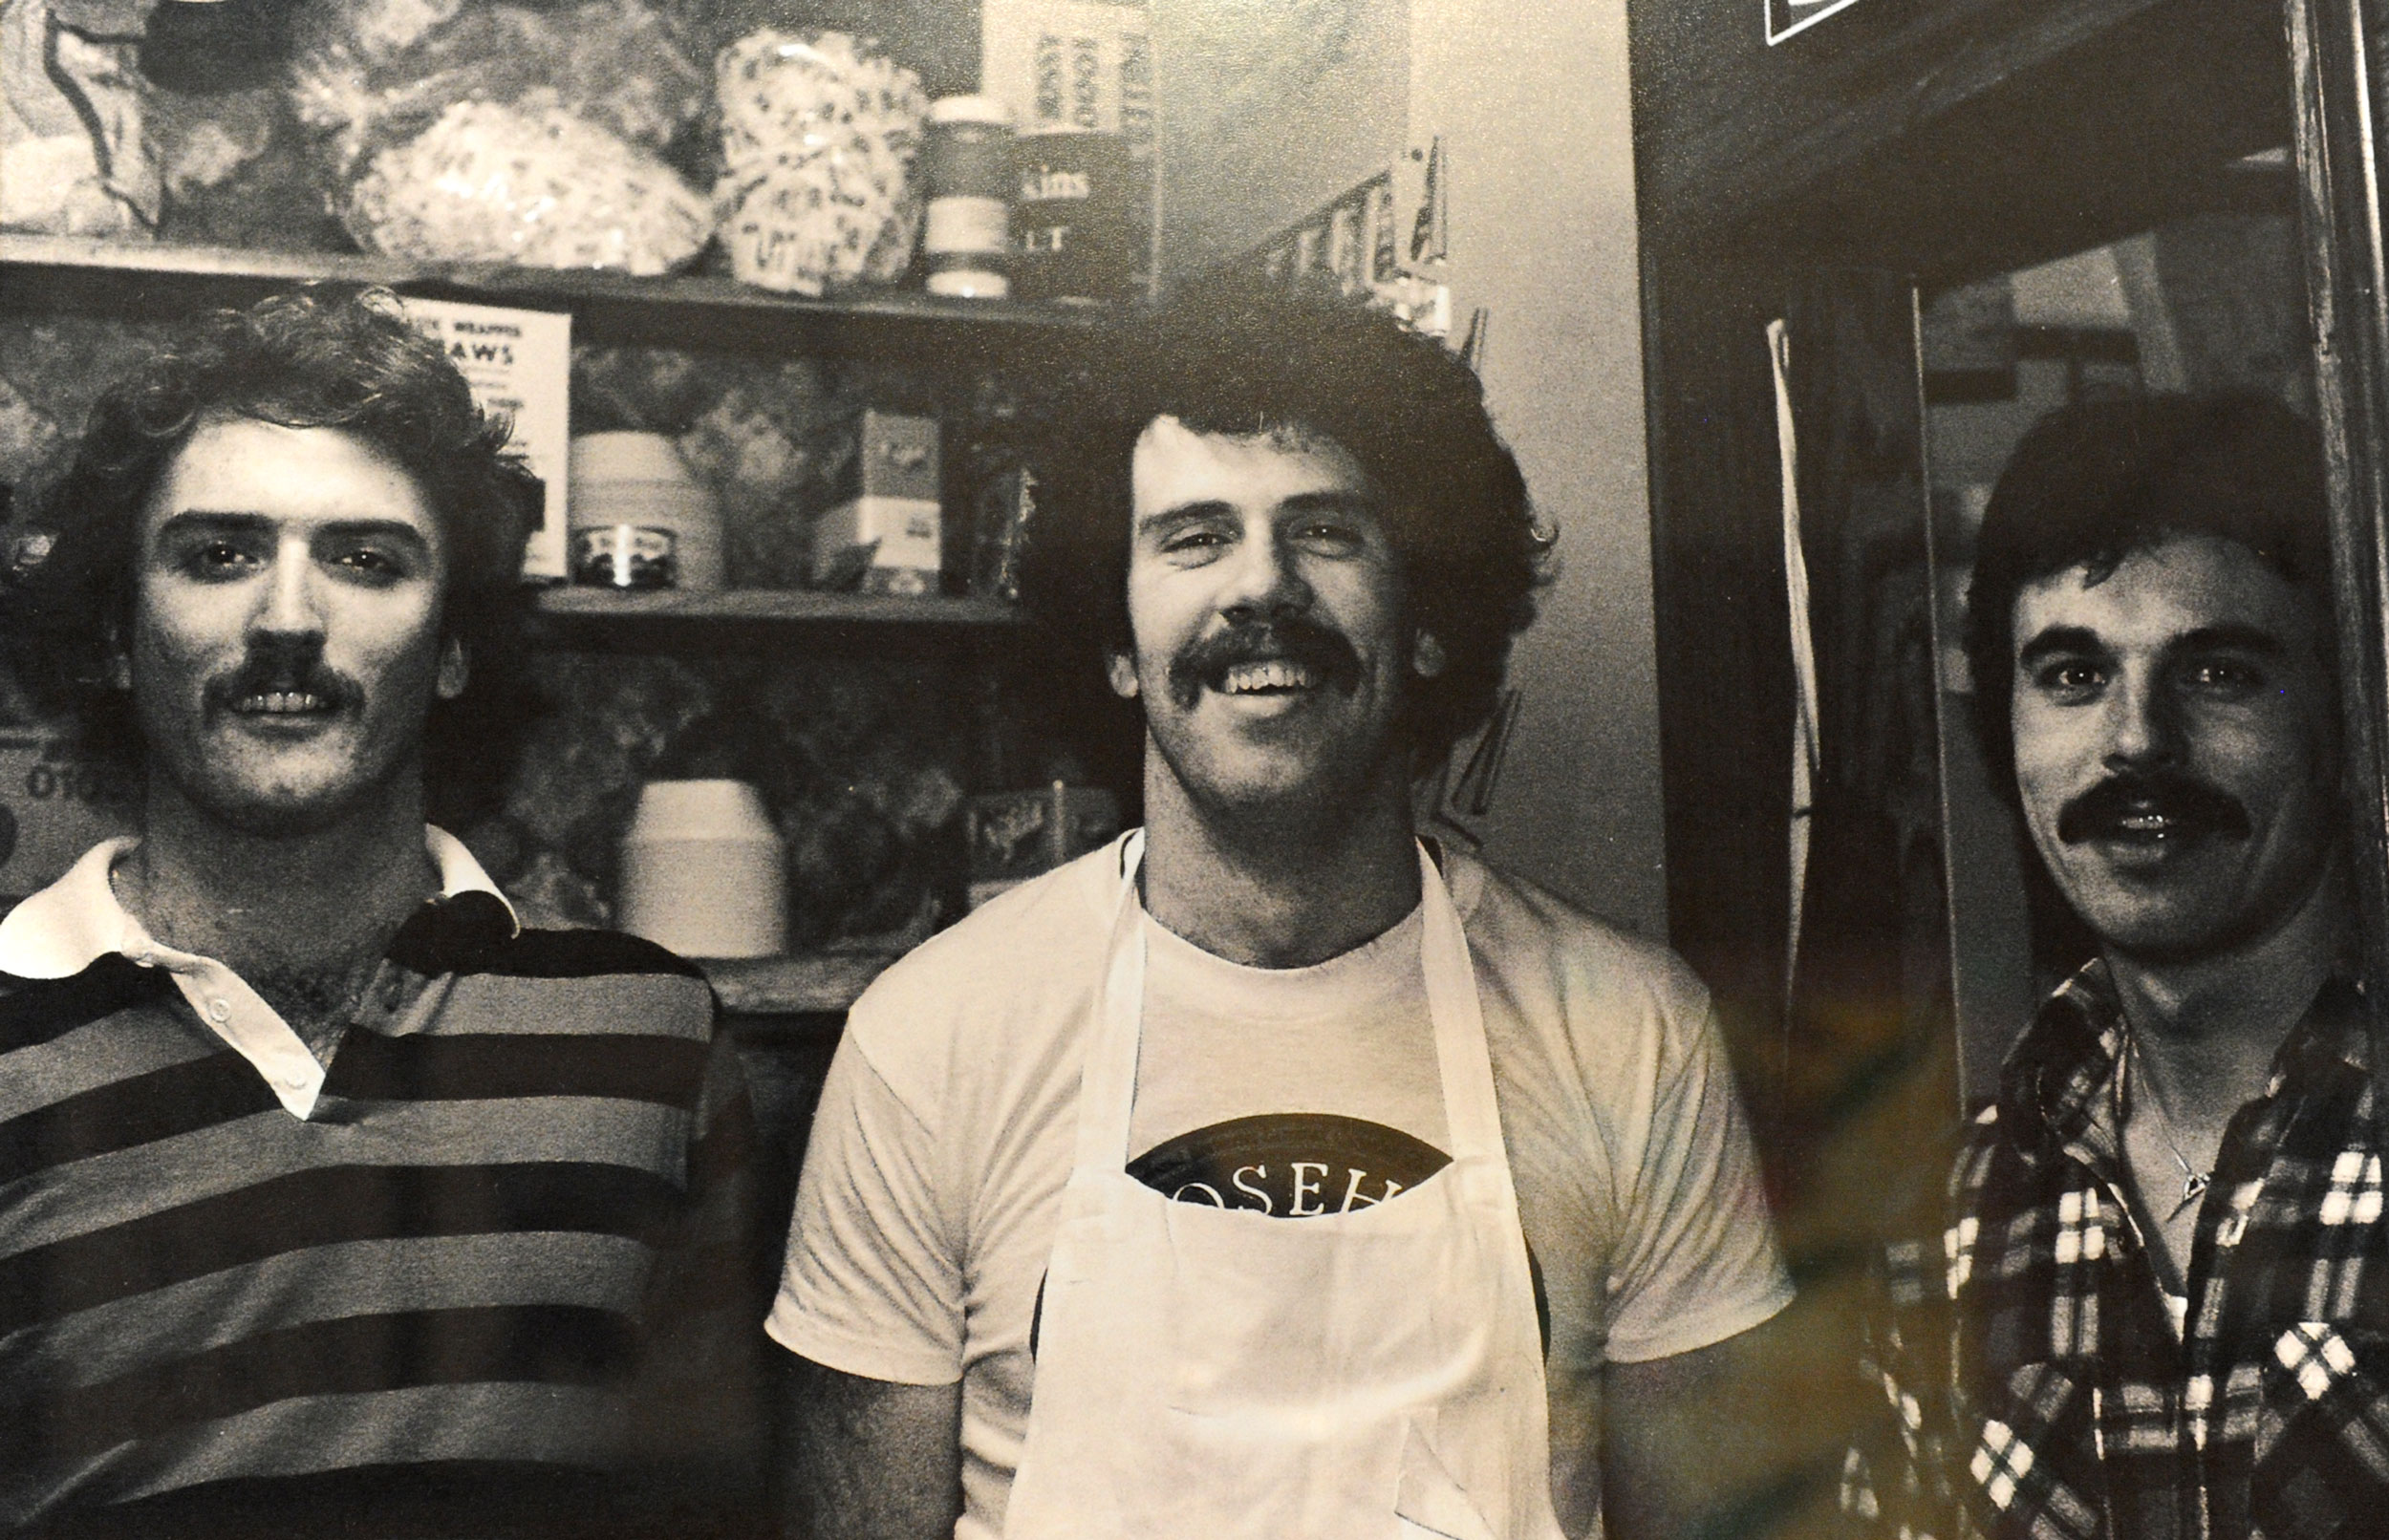 Keith Griswold (General Manager), Bob Rotanz (Owner), Joe Dishaw (Owner) 1980